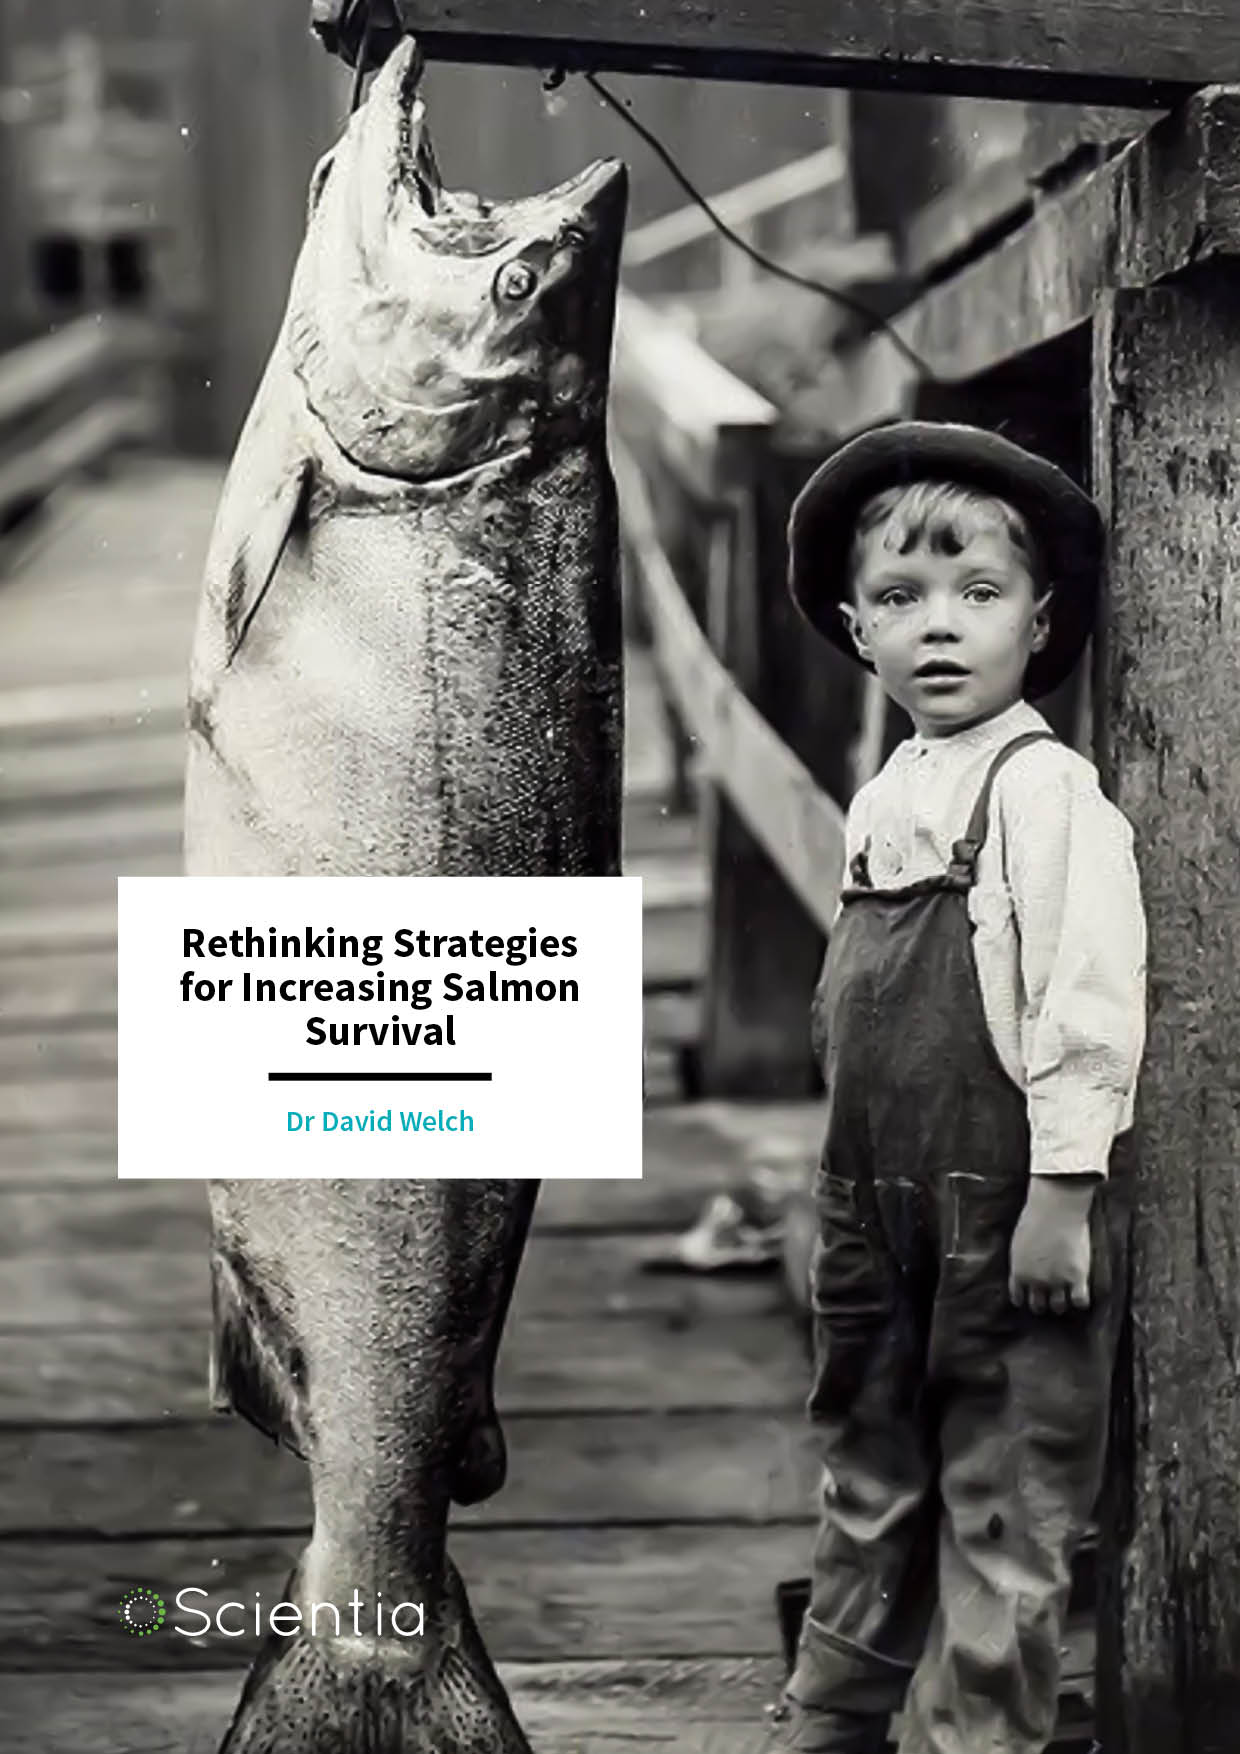 Dr David Welch – Rethinking Strategies for Increasing Salmon Survival